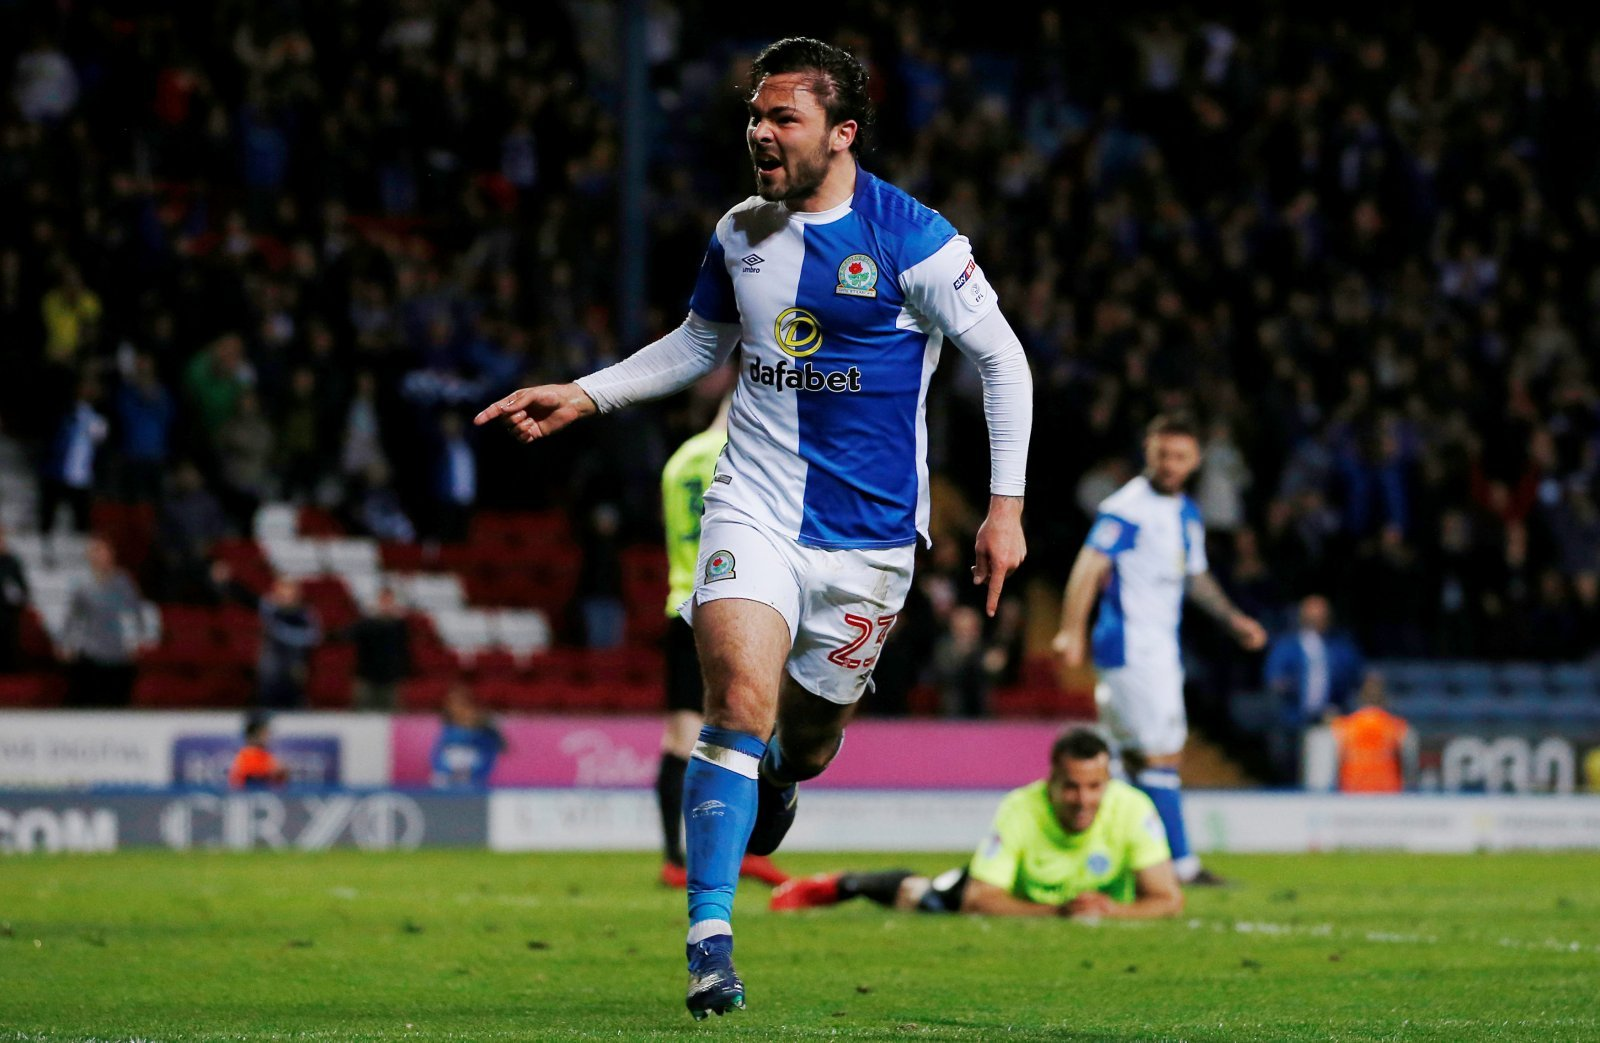 January bid for Bradley Dack could seal Leeds' promotion